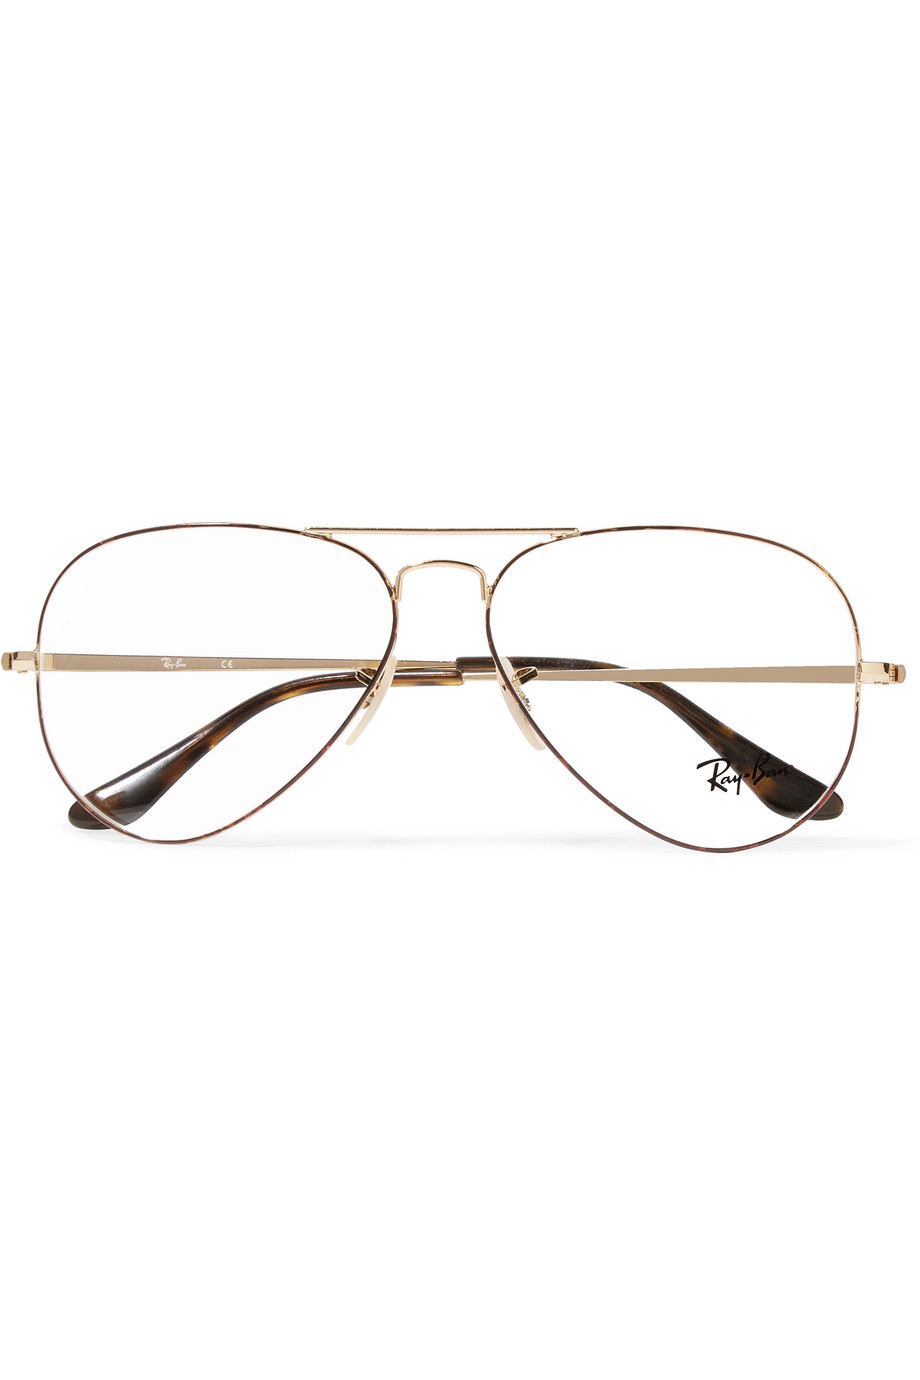 RAY BAN Aviator Optical Glasses  Ray-Ban's optical glasses are designed in the label's signature aviator shape - we've spotted similar oversized, clear lenses on Kendall Jenner, Gigi Hadid and Chiara Ferragni. Made from gold-tone metal, they have delicate frames that are subtly outlined in tortoiseshell acetate. Store yours in the leather case to keep them scratch-free.